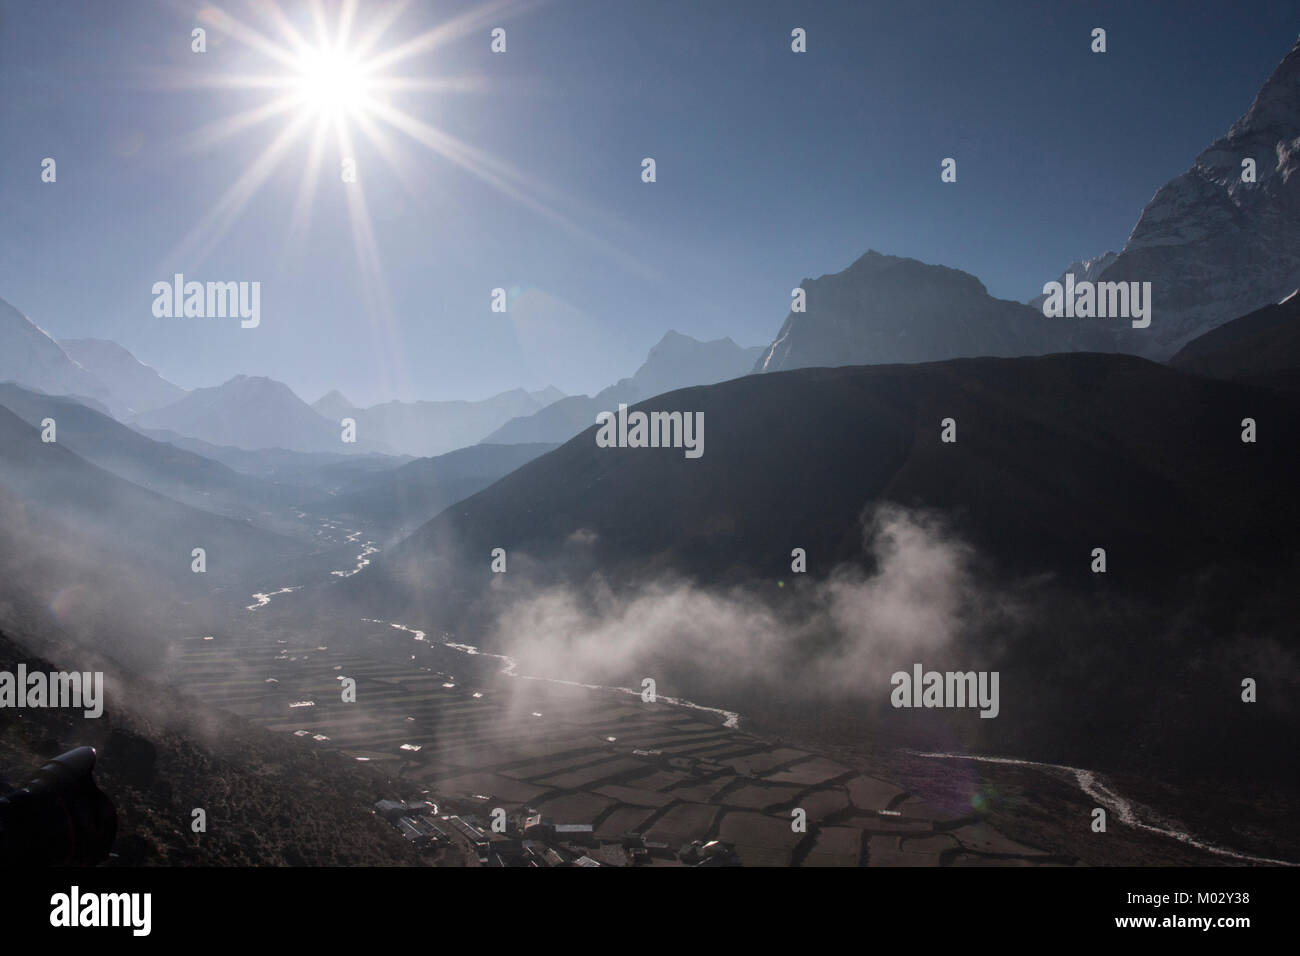 Sunrise seen from Lobuche, Everest region of Nepal. - Stock Image